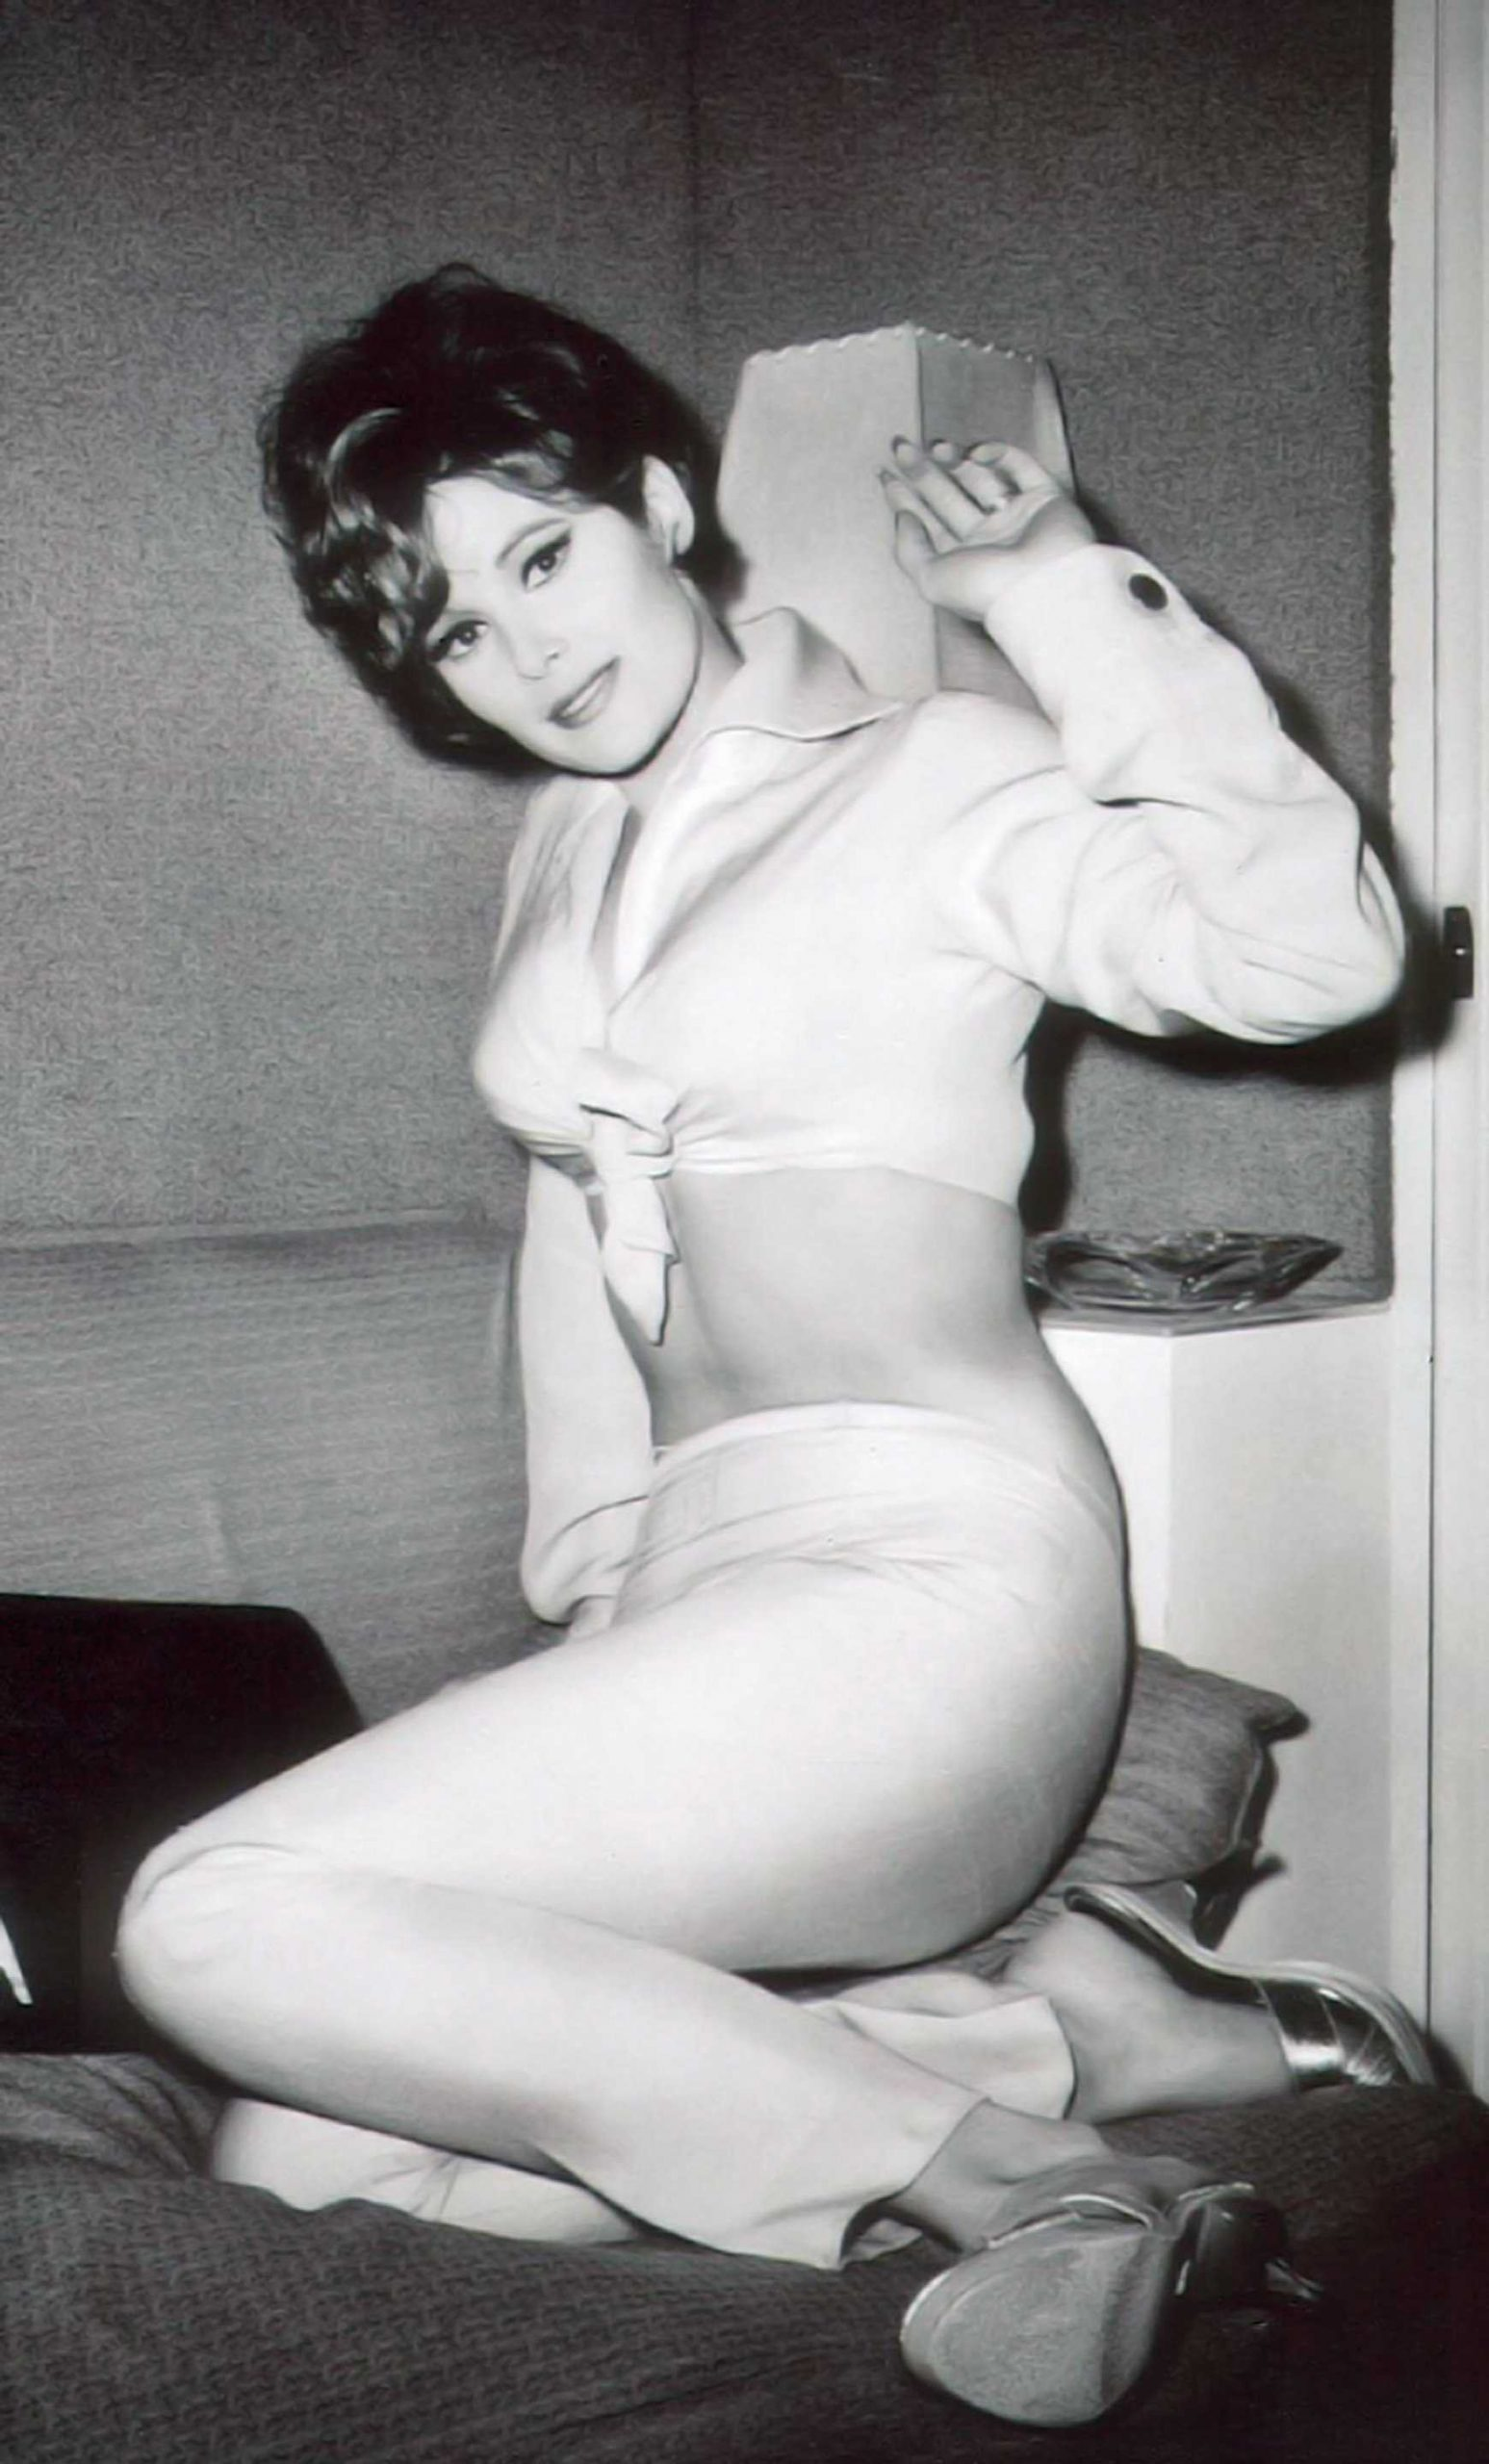 61 Jill St. John Sexy Pictures Demonstrate That She Is As Hot As Anyone Might Imagine - GEEKS ON ...